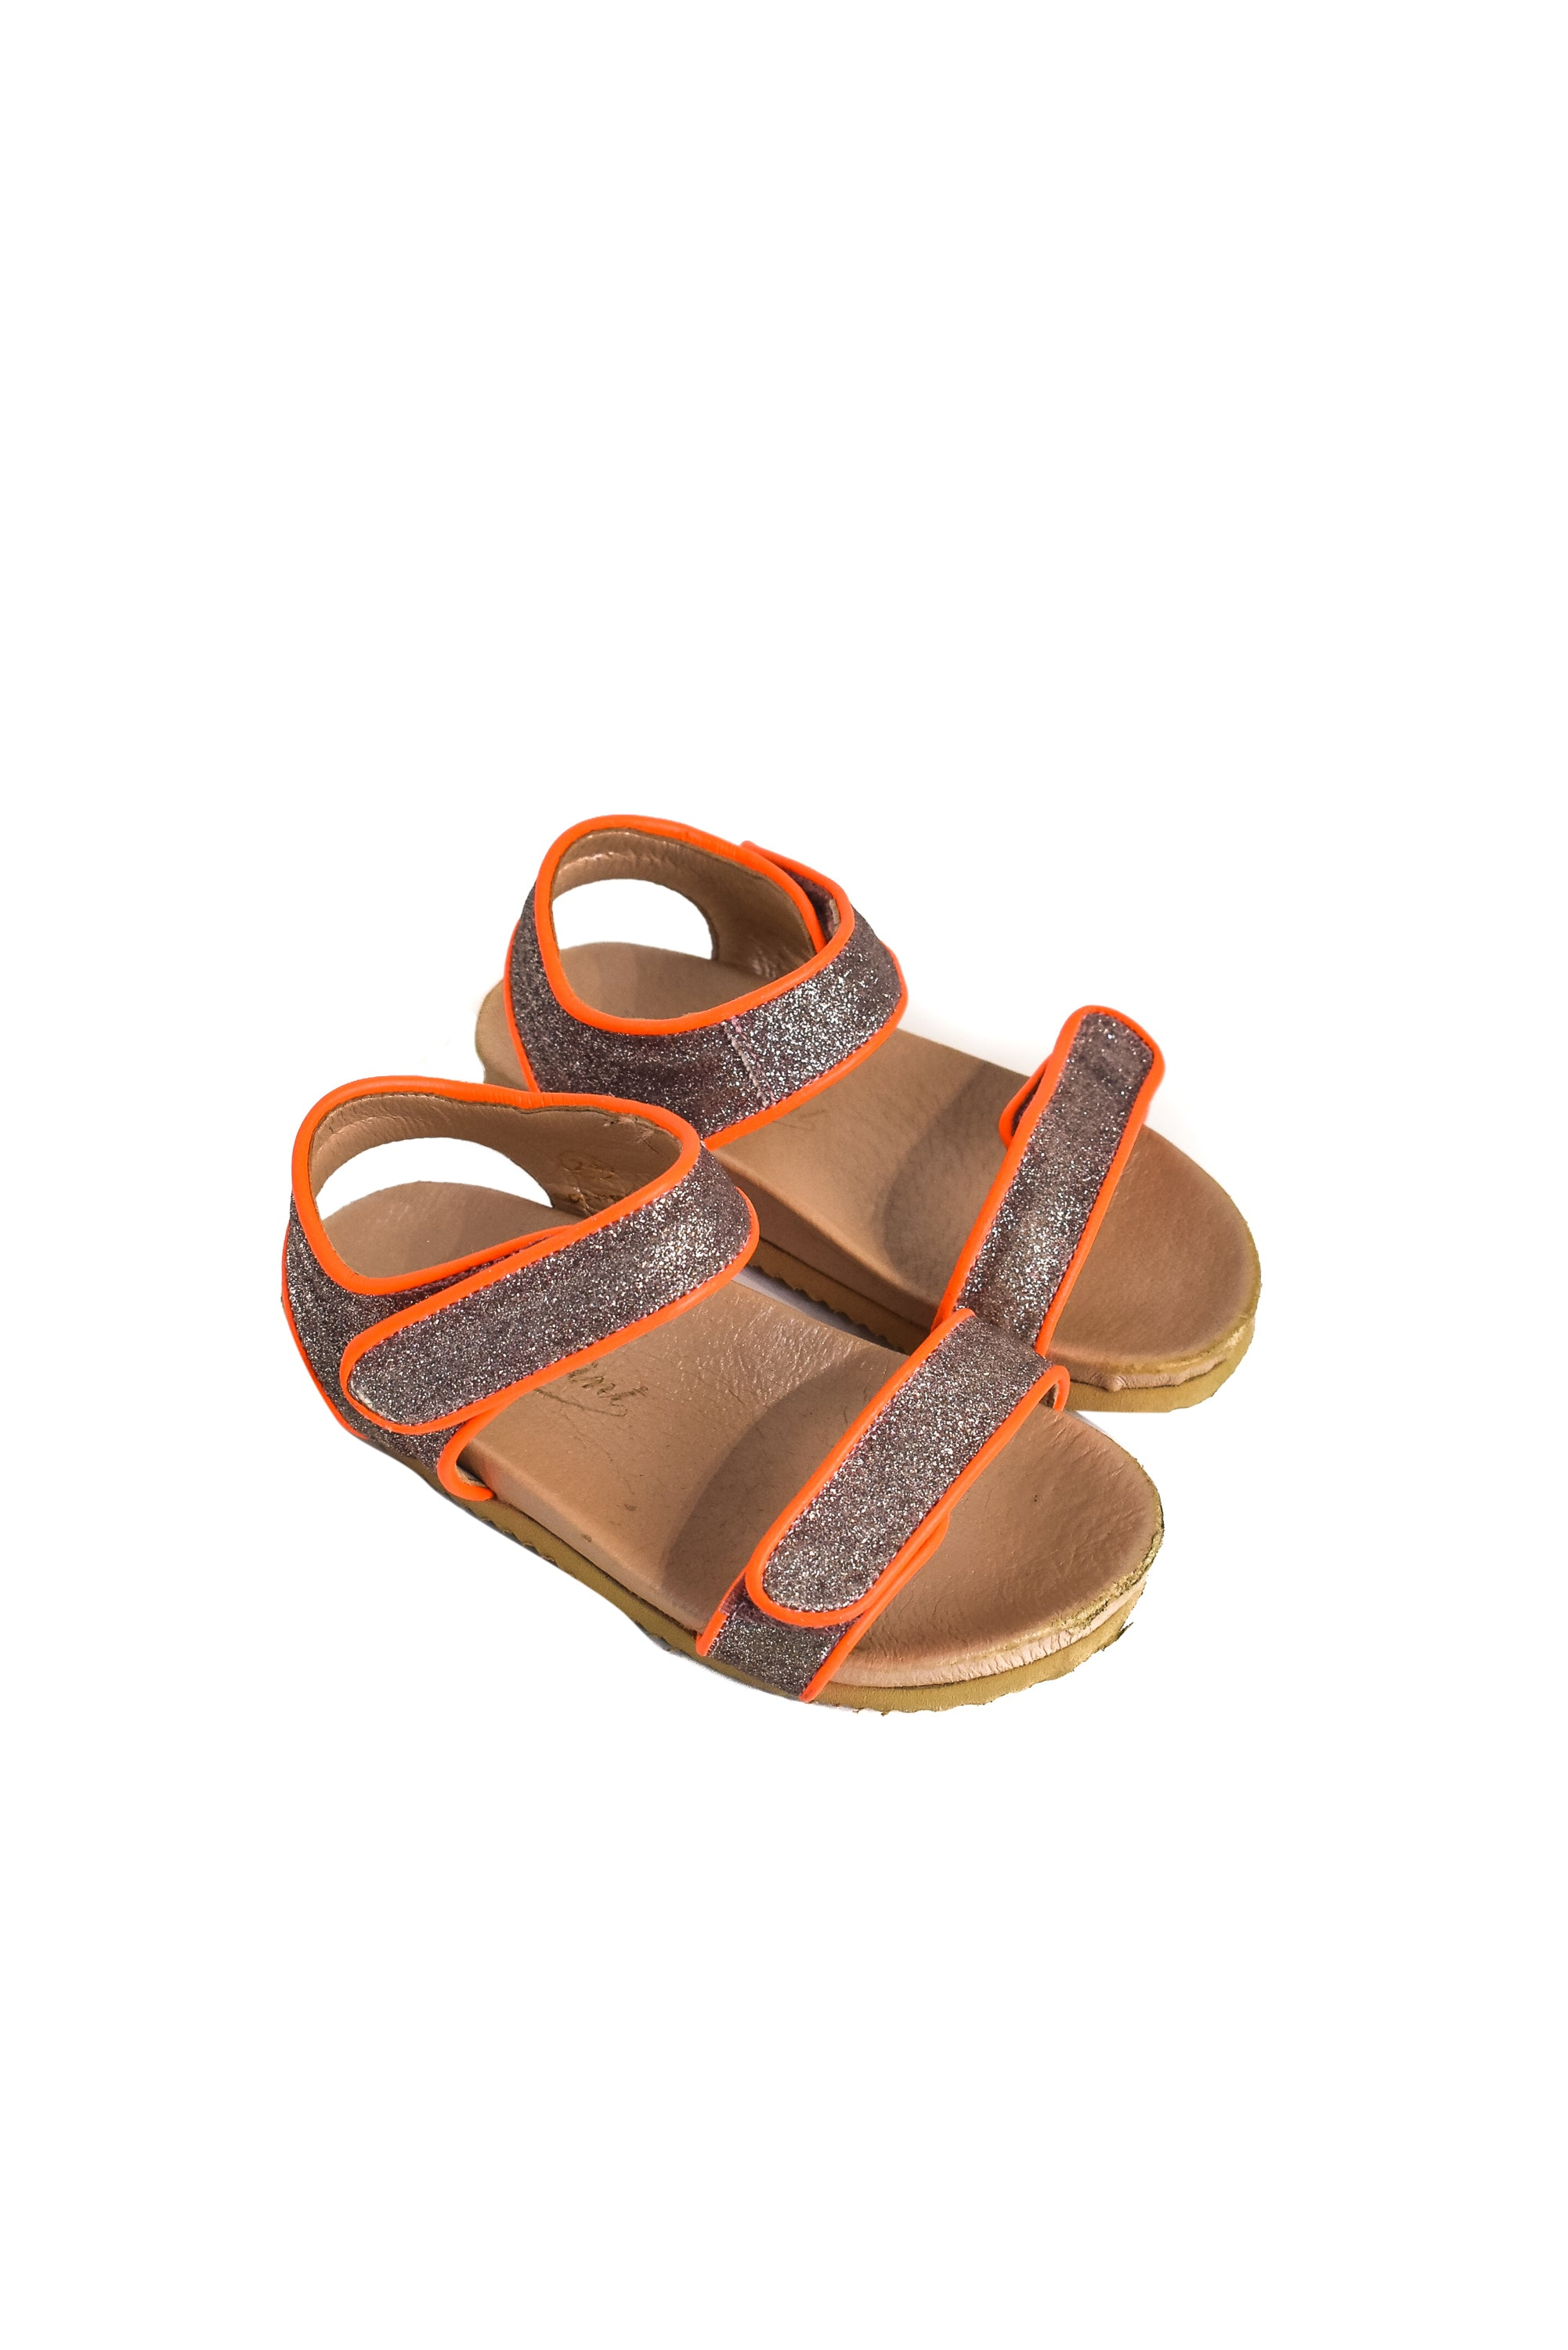 10037715 Bonpoint Kids~Sandals 3T (EU 24) at Retykle